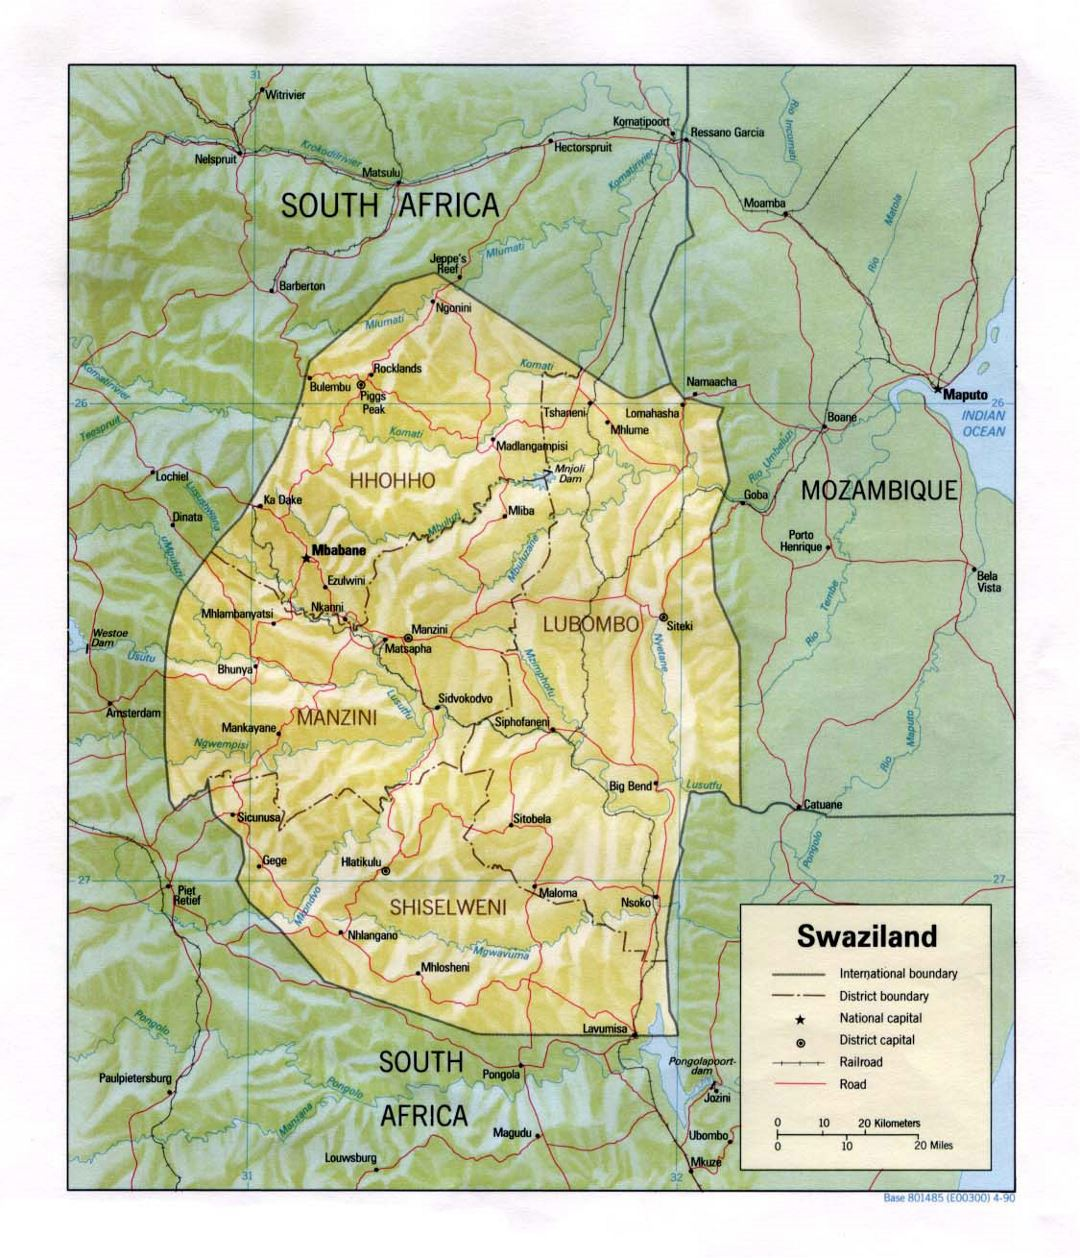 Detailed political and administrative map of Swaziland with relief, roads, railroads and major cities - 1990